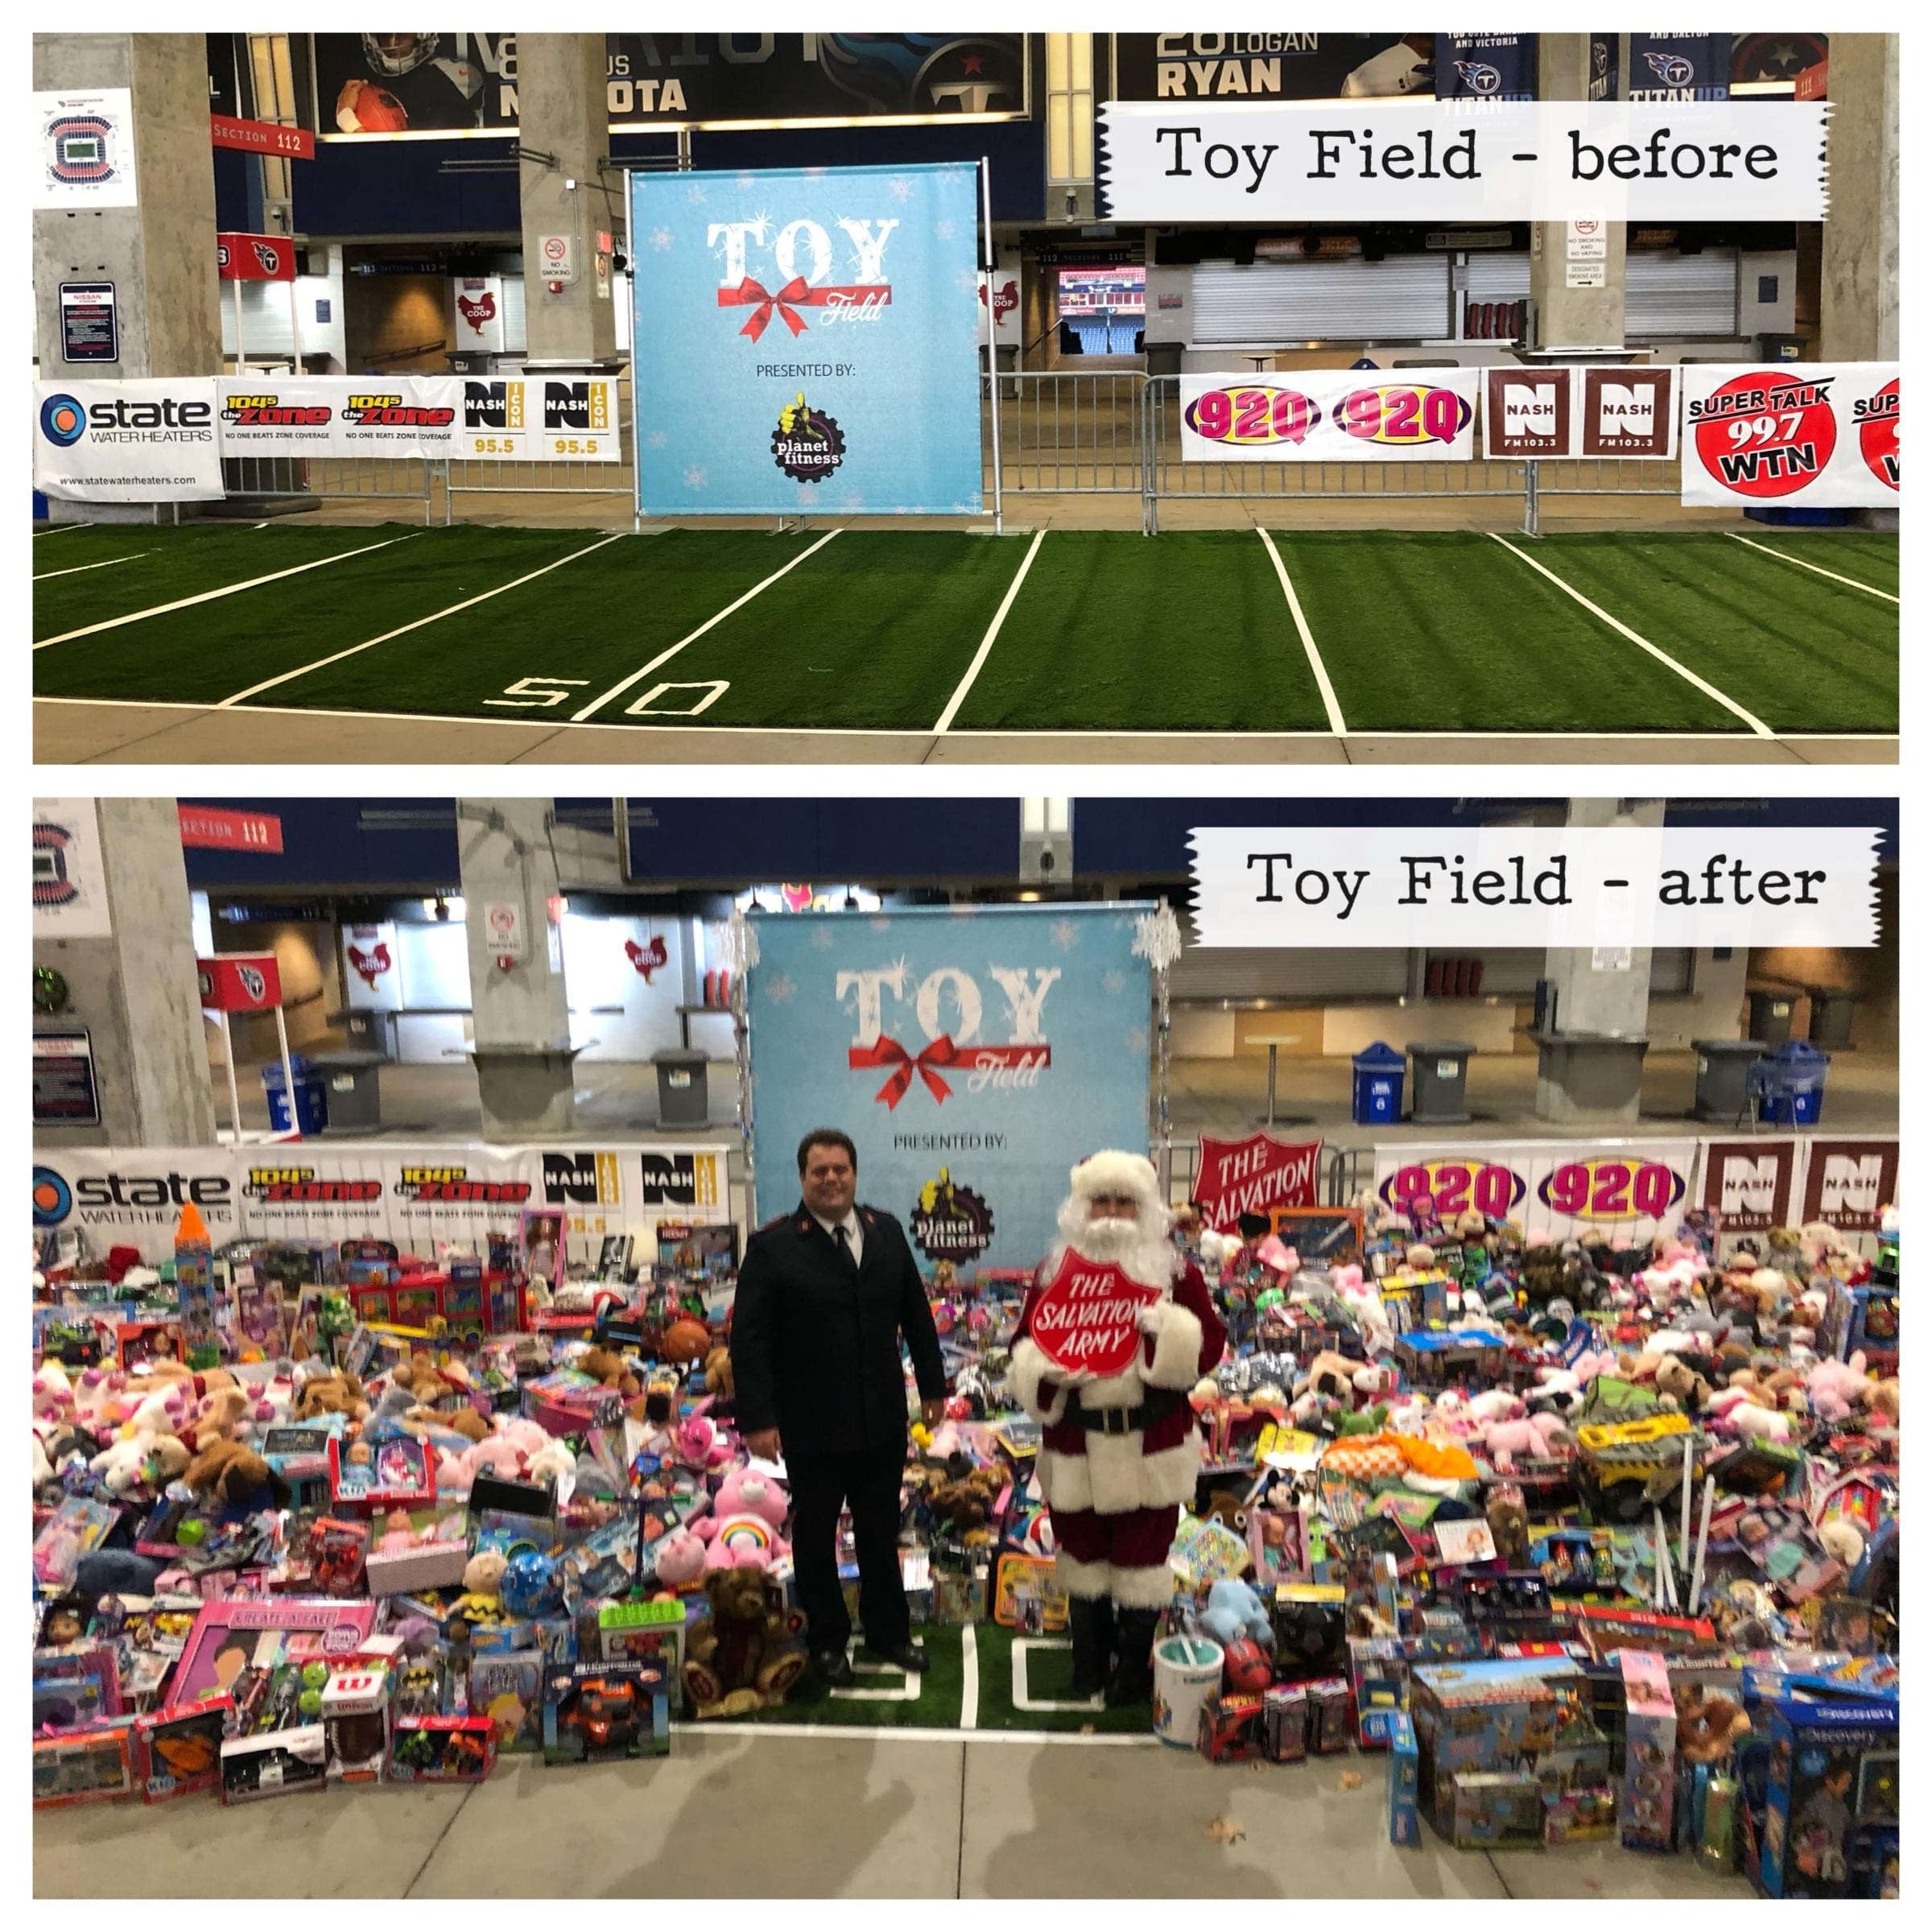 Cumulus Nashville Collects Thousands of Toys at Toy Field!